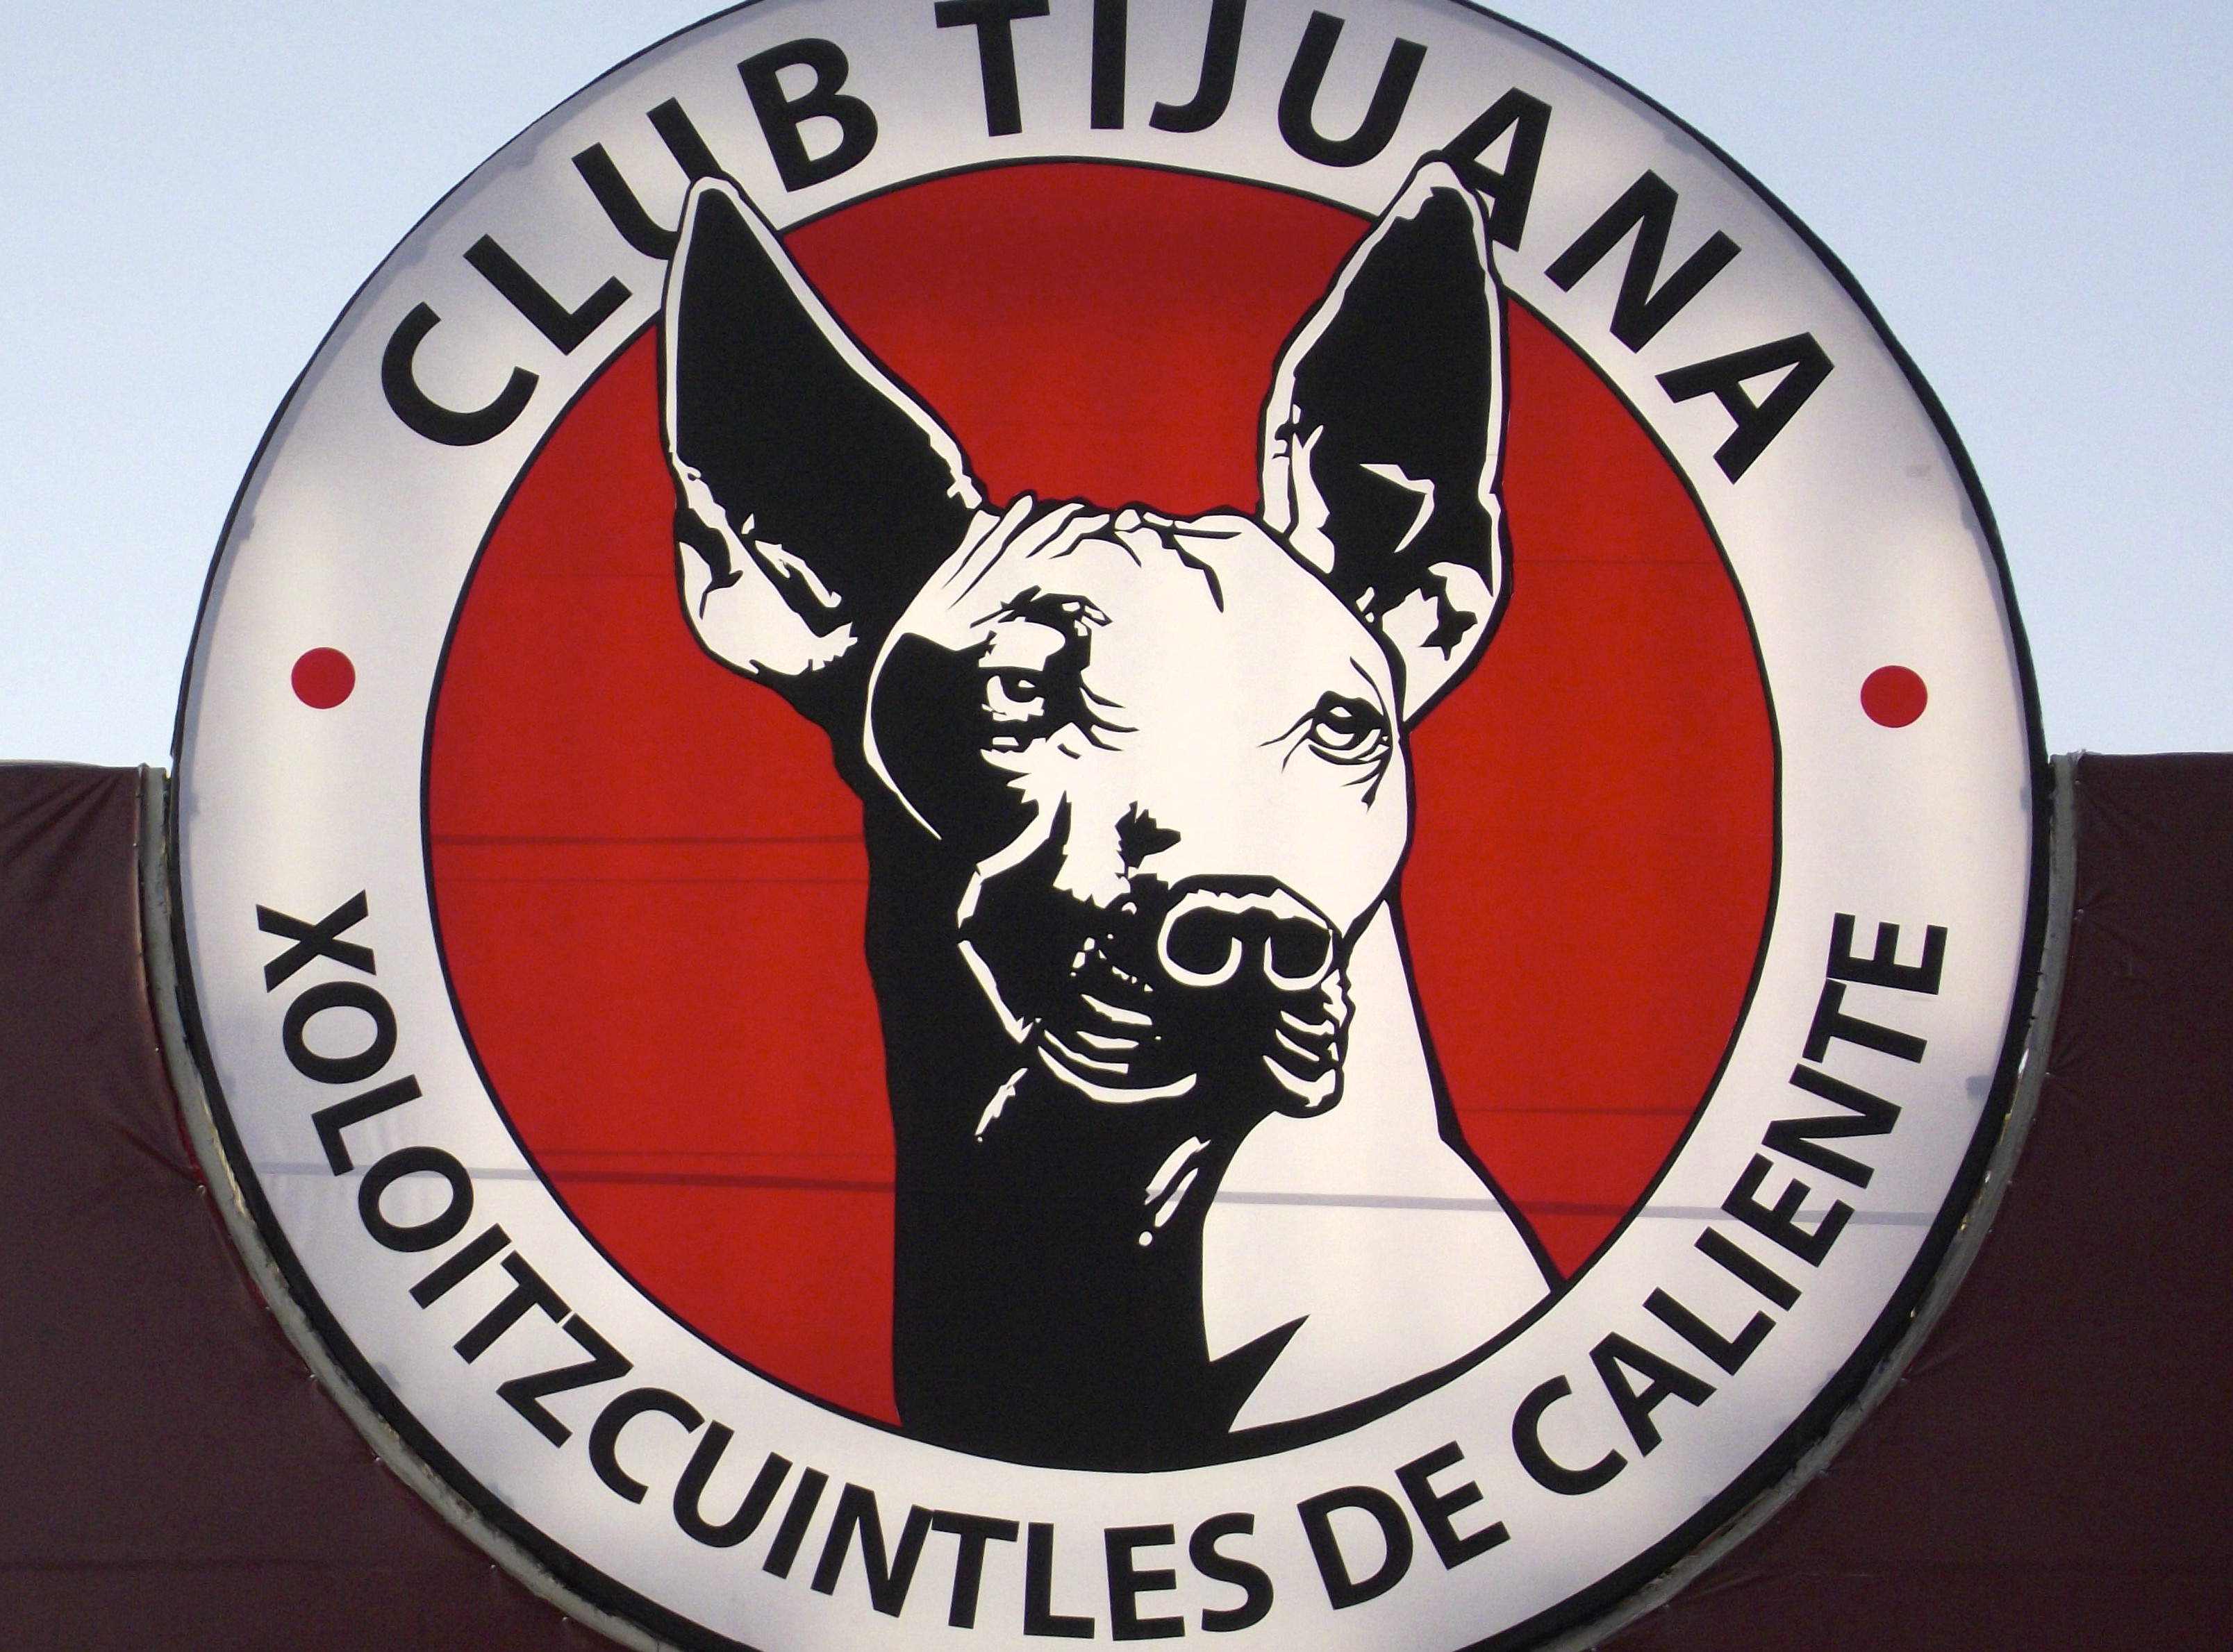 Tijuanas Soccer Team The Xolos Wins Fans On Both Sides Of The